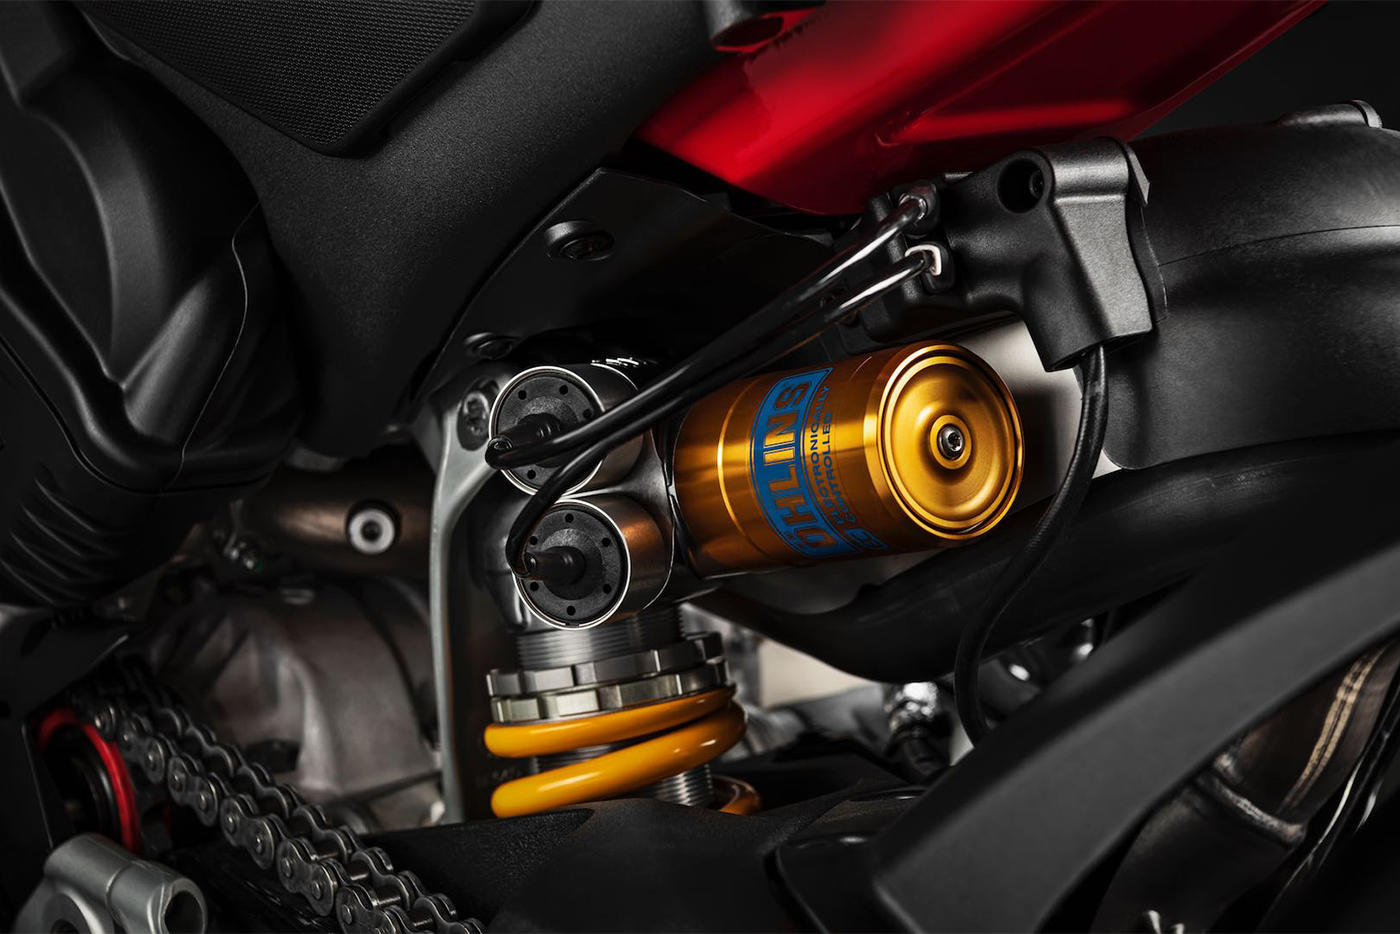 2020-ducati-panigale-v4-first-look-fast-facts-4.jpg